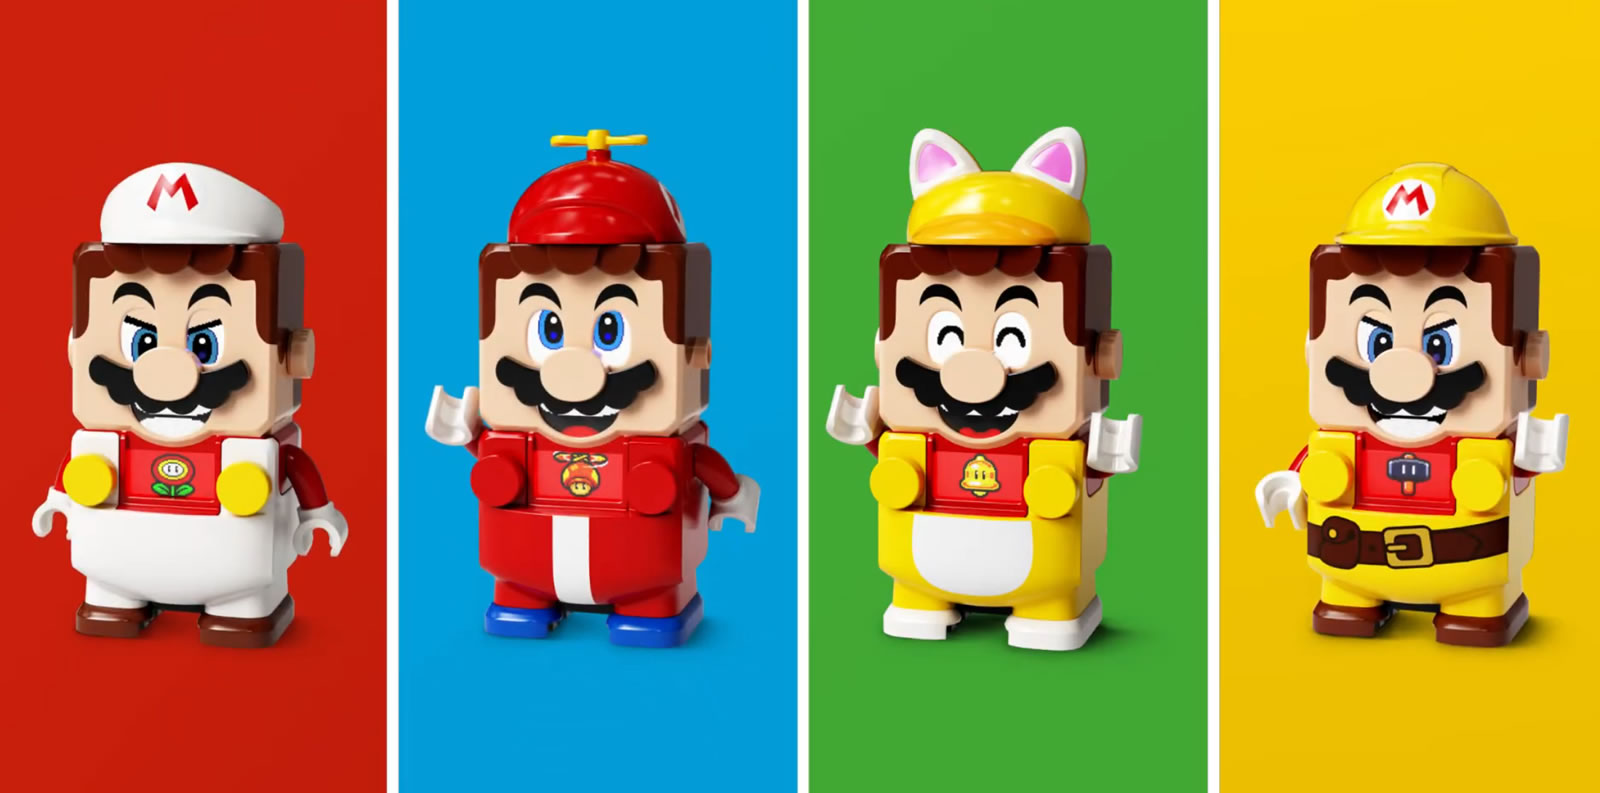 Nintendo s'associe avec LEGO ! - Page 3 New-lego-super-mario-outfits-extension-packs